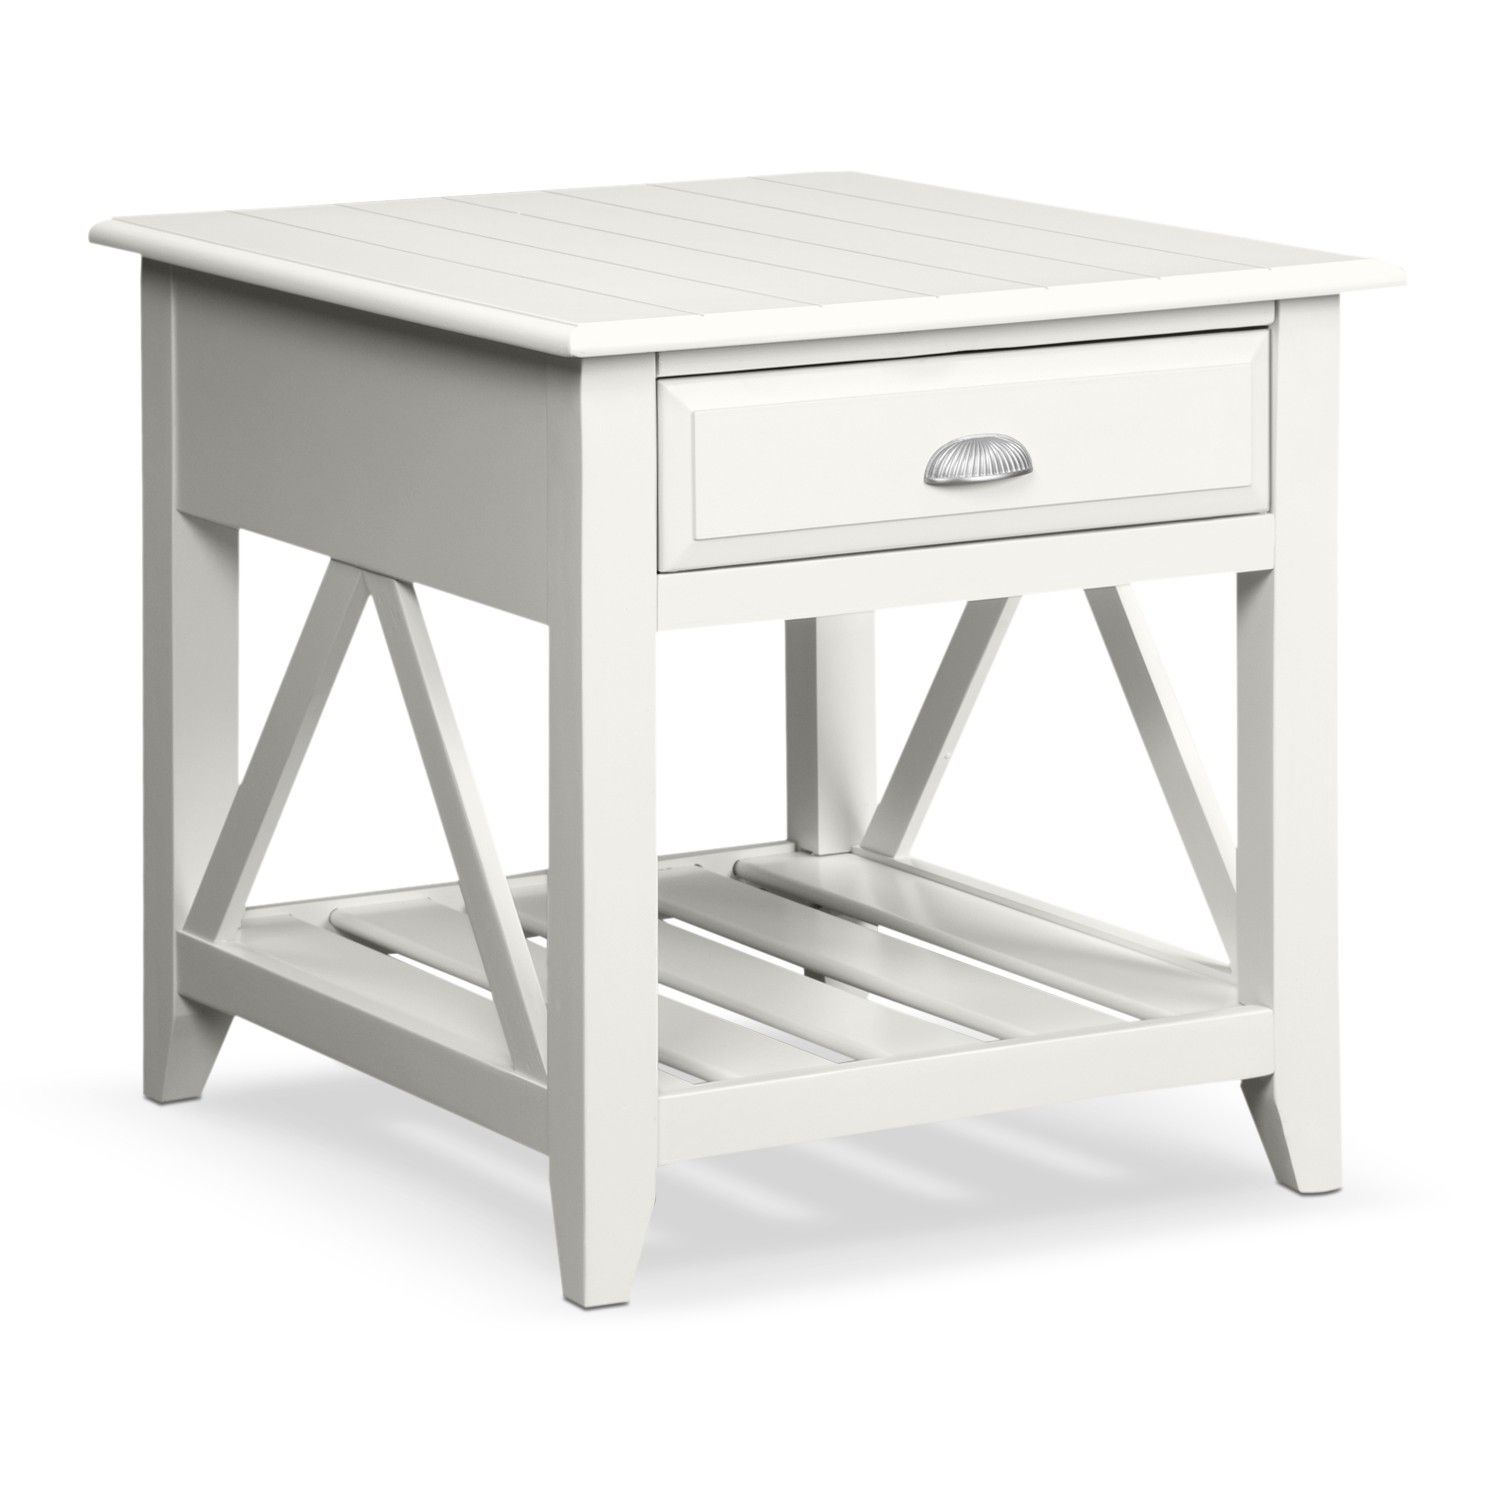 Nested End Tables And Square White Polished Oak Wood End Rtable With Single  Drawer And Open. Nested End Tables And Square White Polished Oak Wood End Rtable